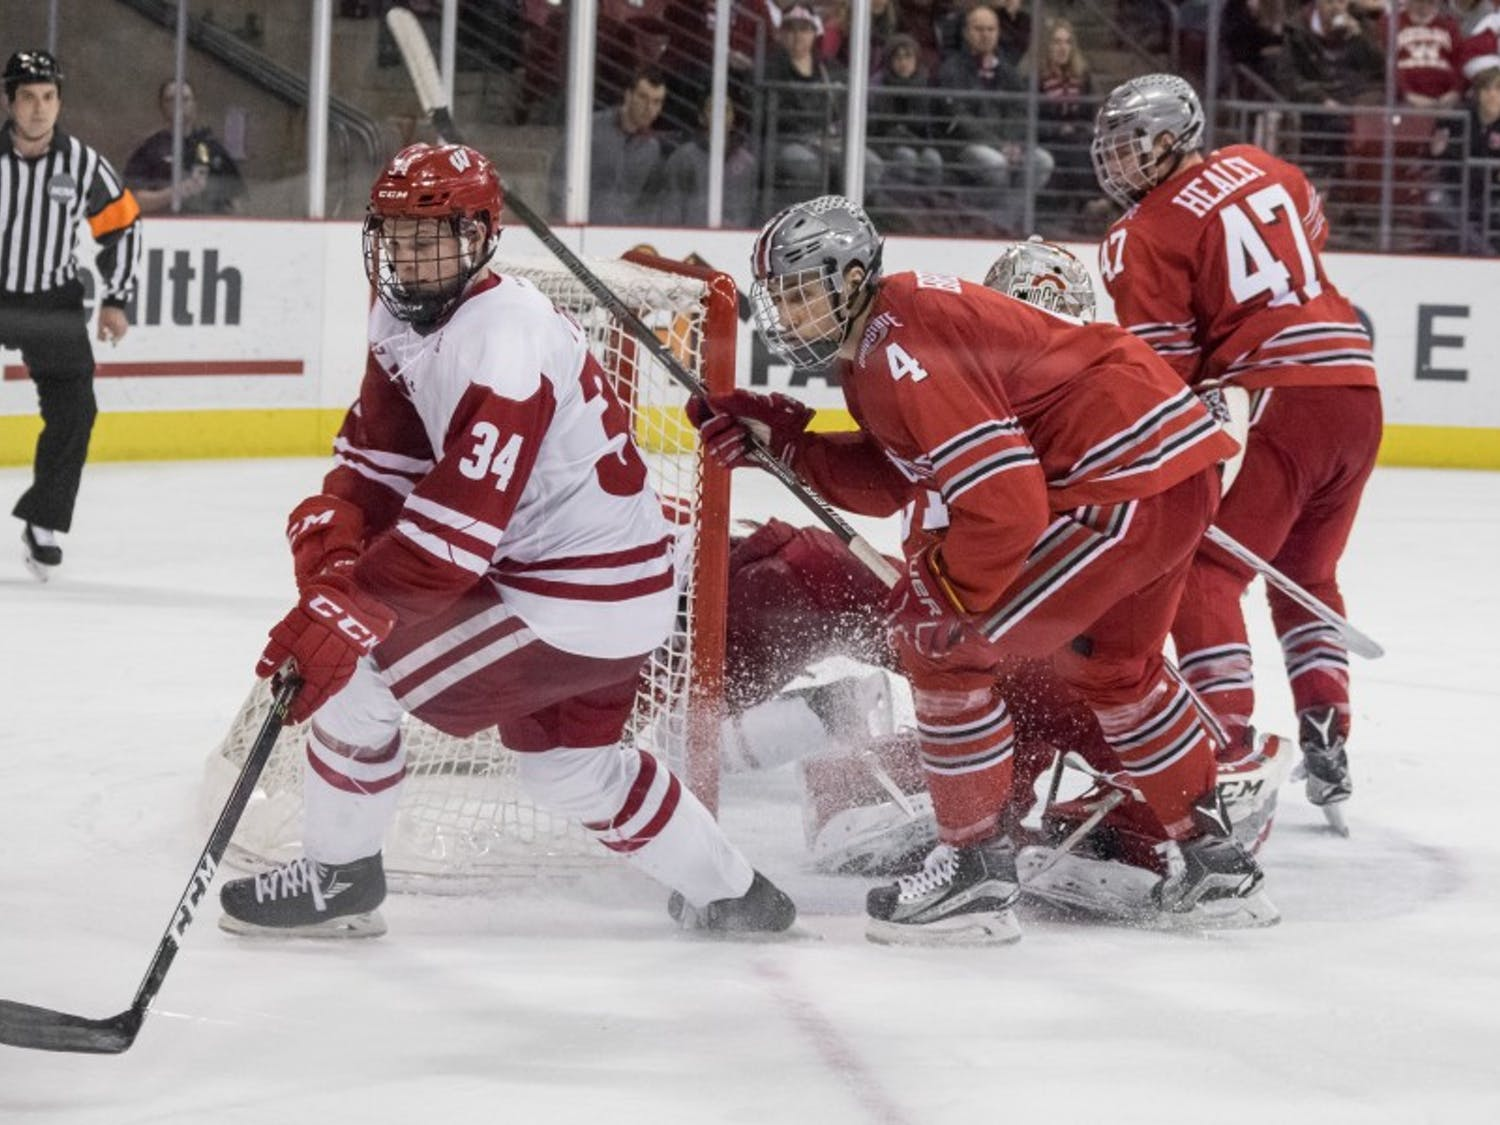 Trent Frederic has not been as dominant as many predicted thus far in his sophomore season. If Frederic can respond and pick up some offensive momentum, the Badgers will likely earn a sweep this weekend against Michigan State.